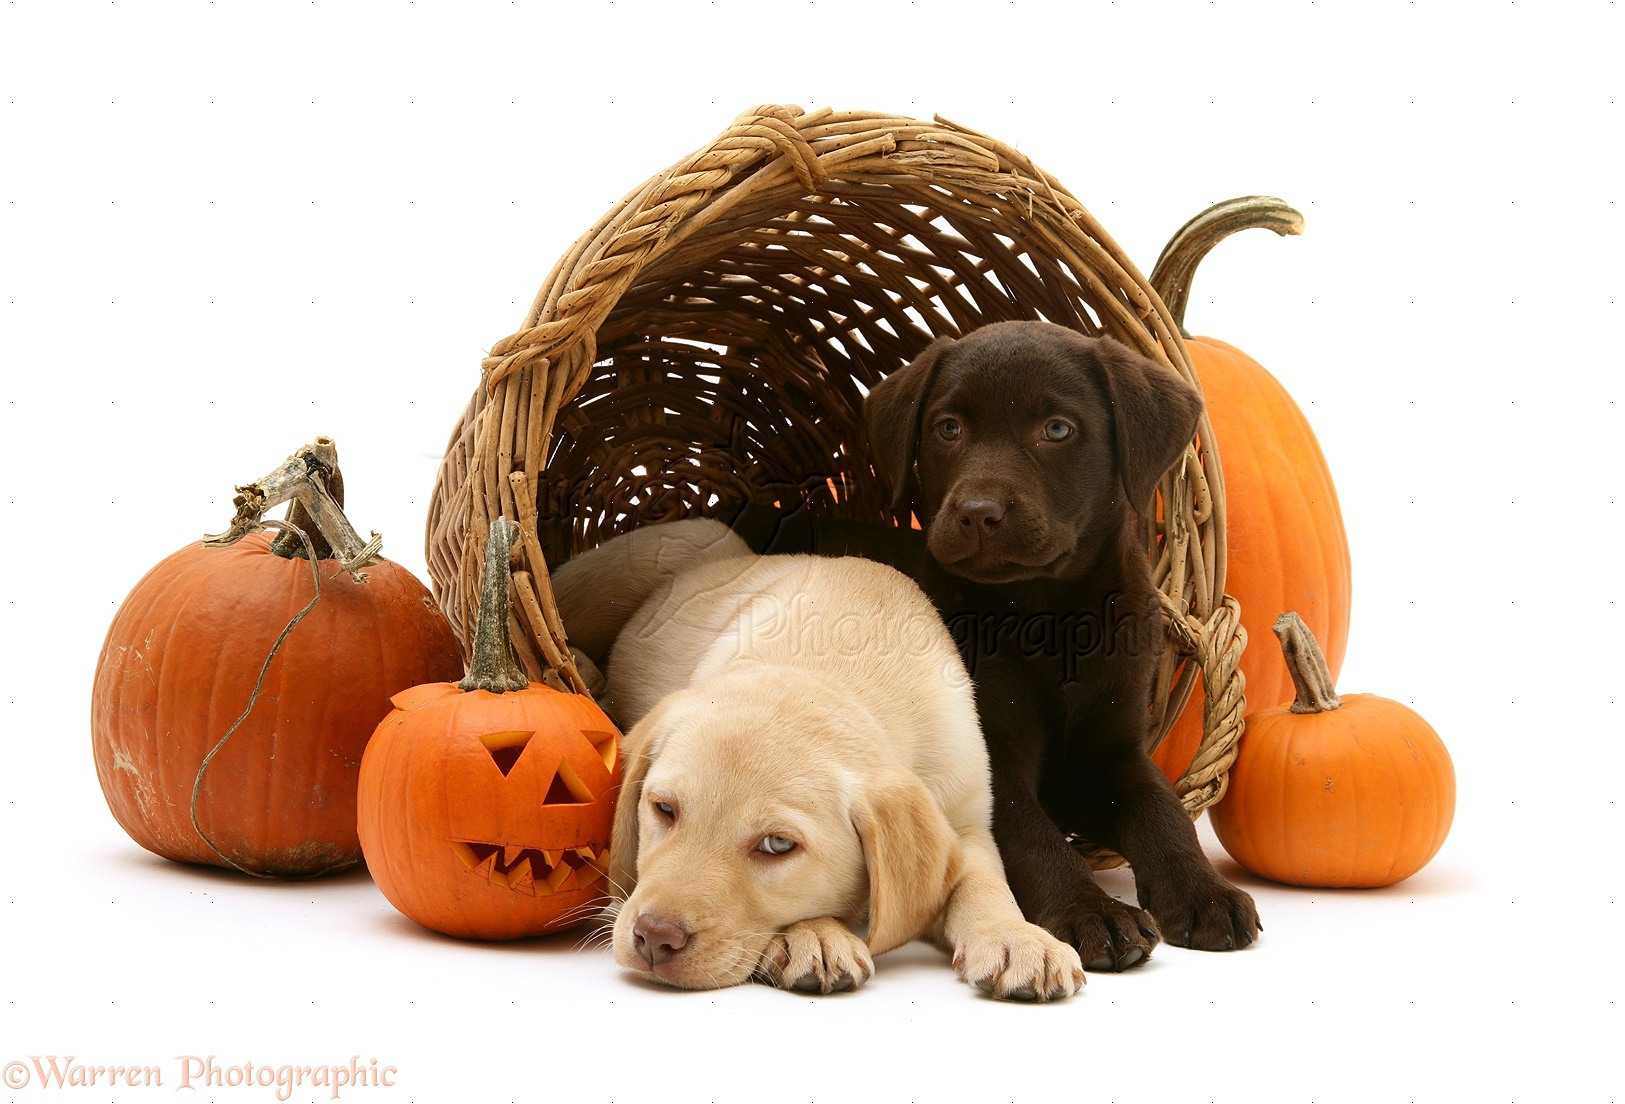 Dogs: Yellow and Chocolate Retriever pups at Halloween photo - WP24705